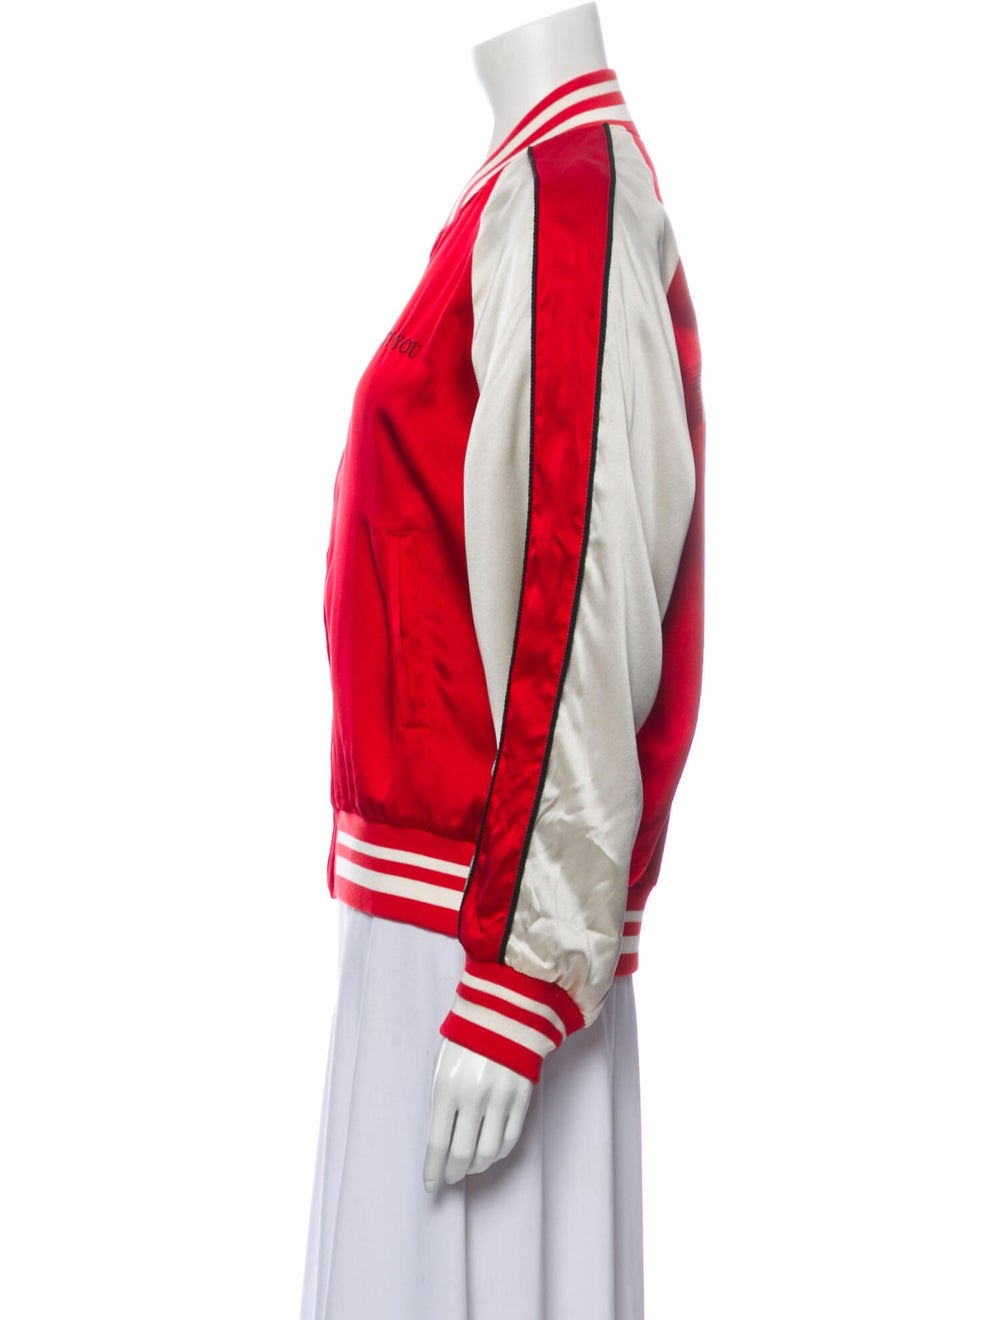 Undercover Silk Striped Bomber Jacket w/ Tags Red - image 2